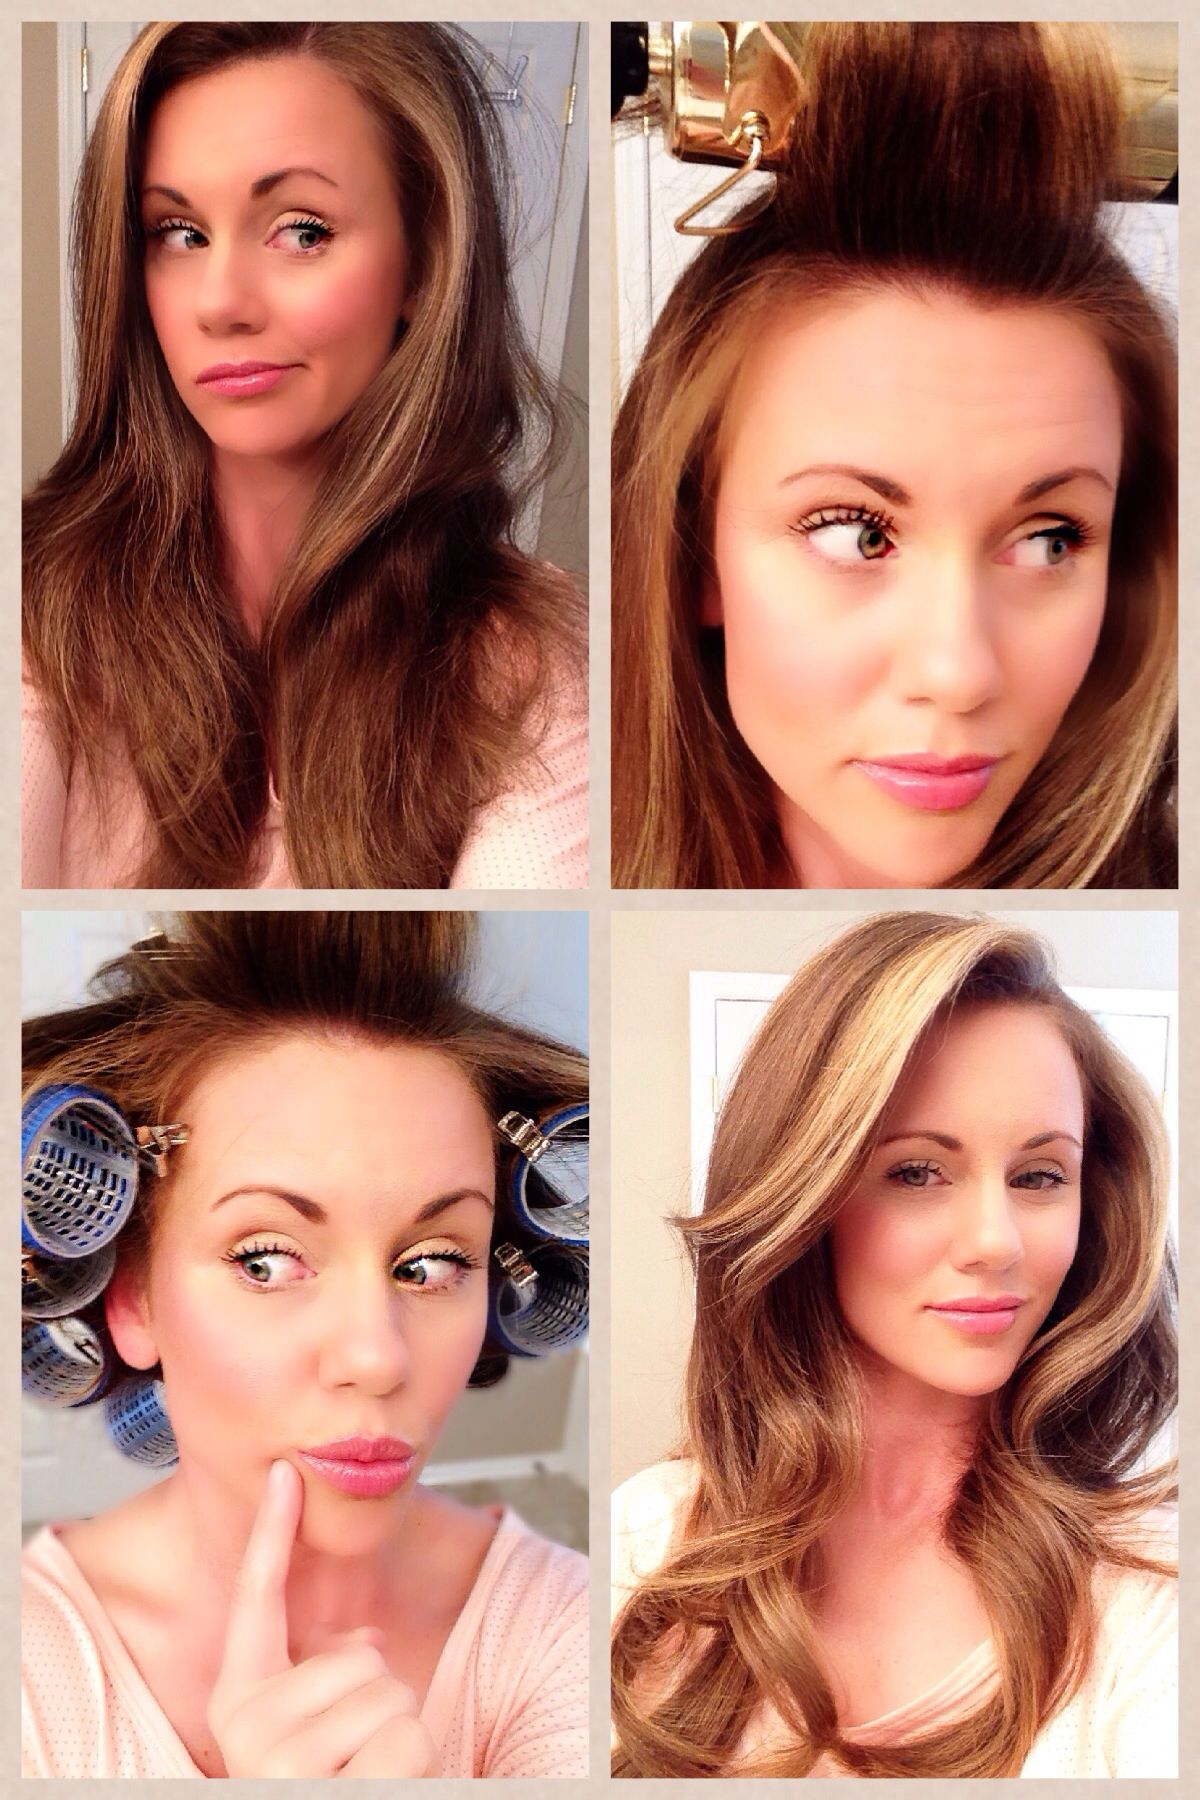 Pin By Chelle Leigh On Fix Your Face Hair Rollers Pinterest Hair Hair Beauty